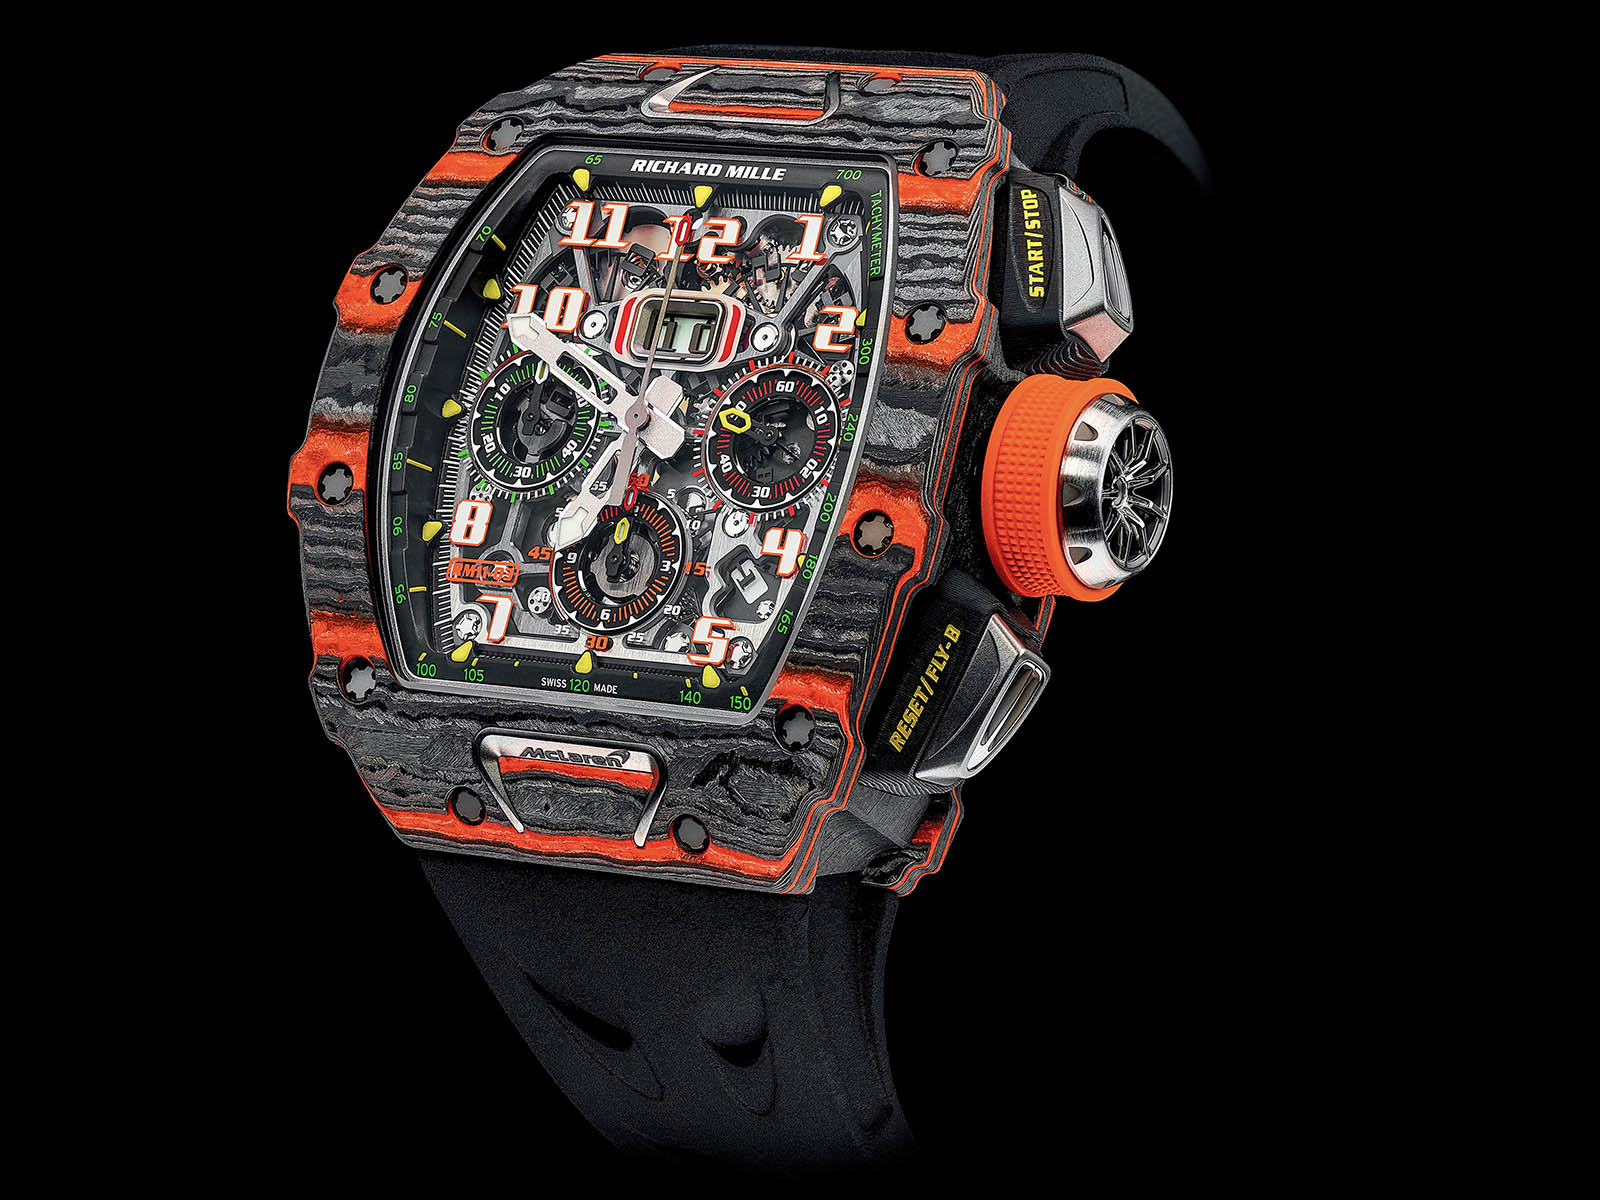 richard-mille-rm11-03-automatic-flyback-chronograph-mclaren.jpg